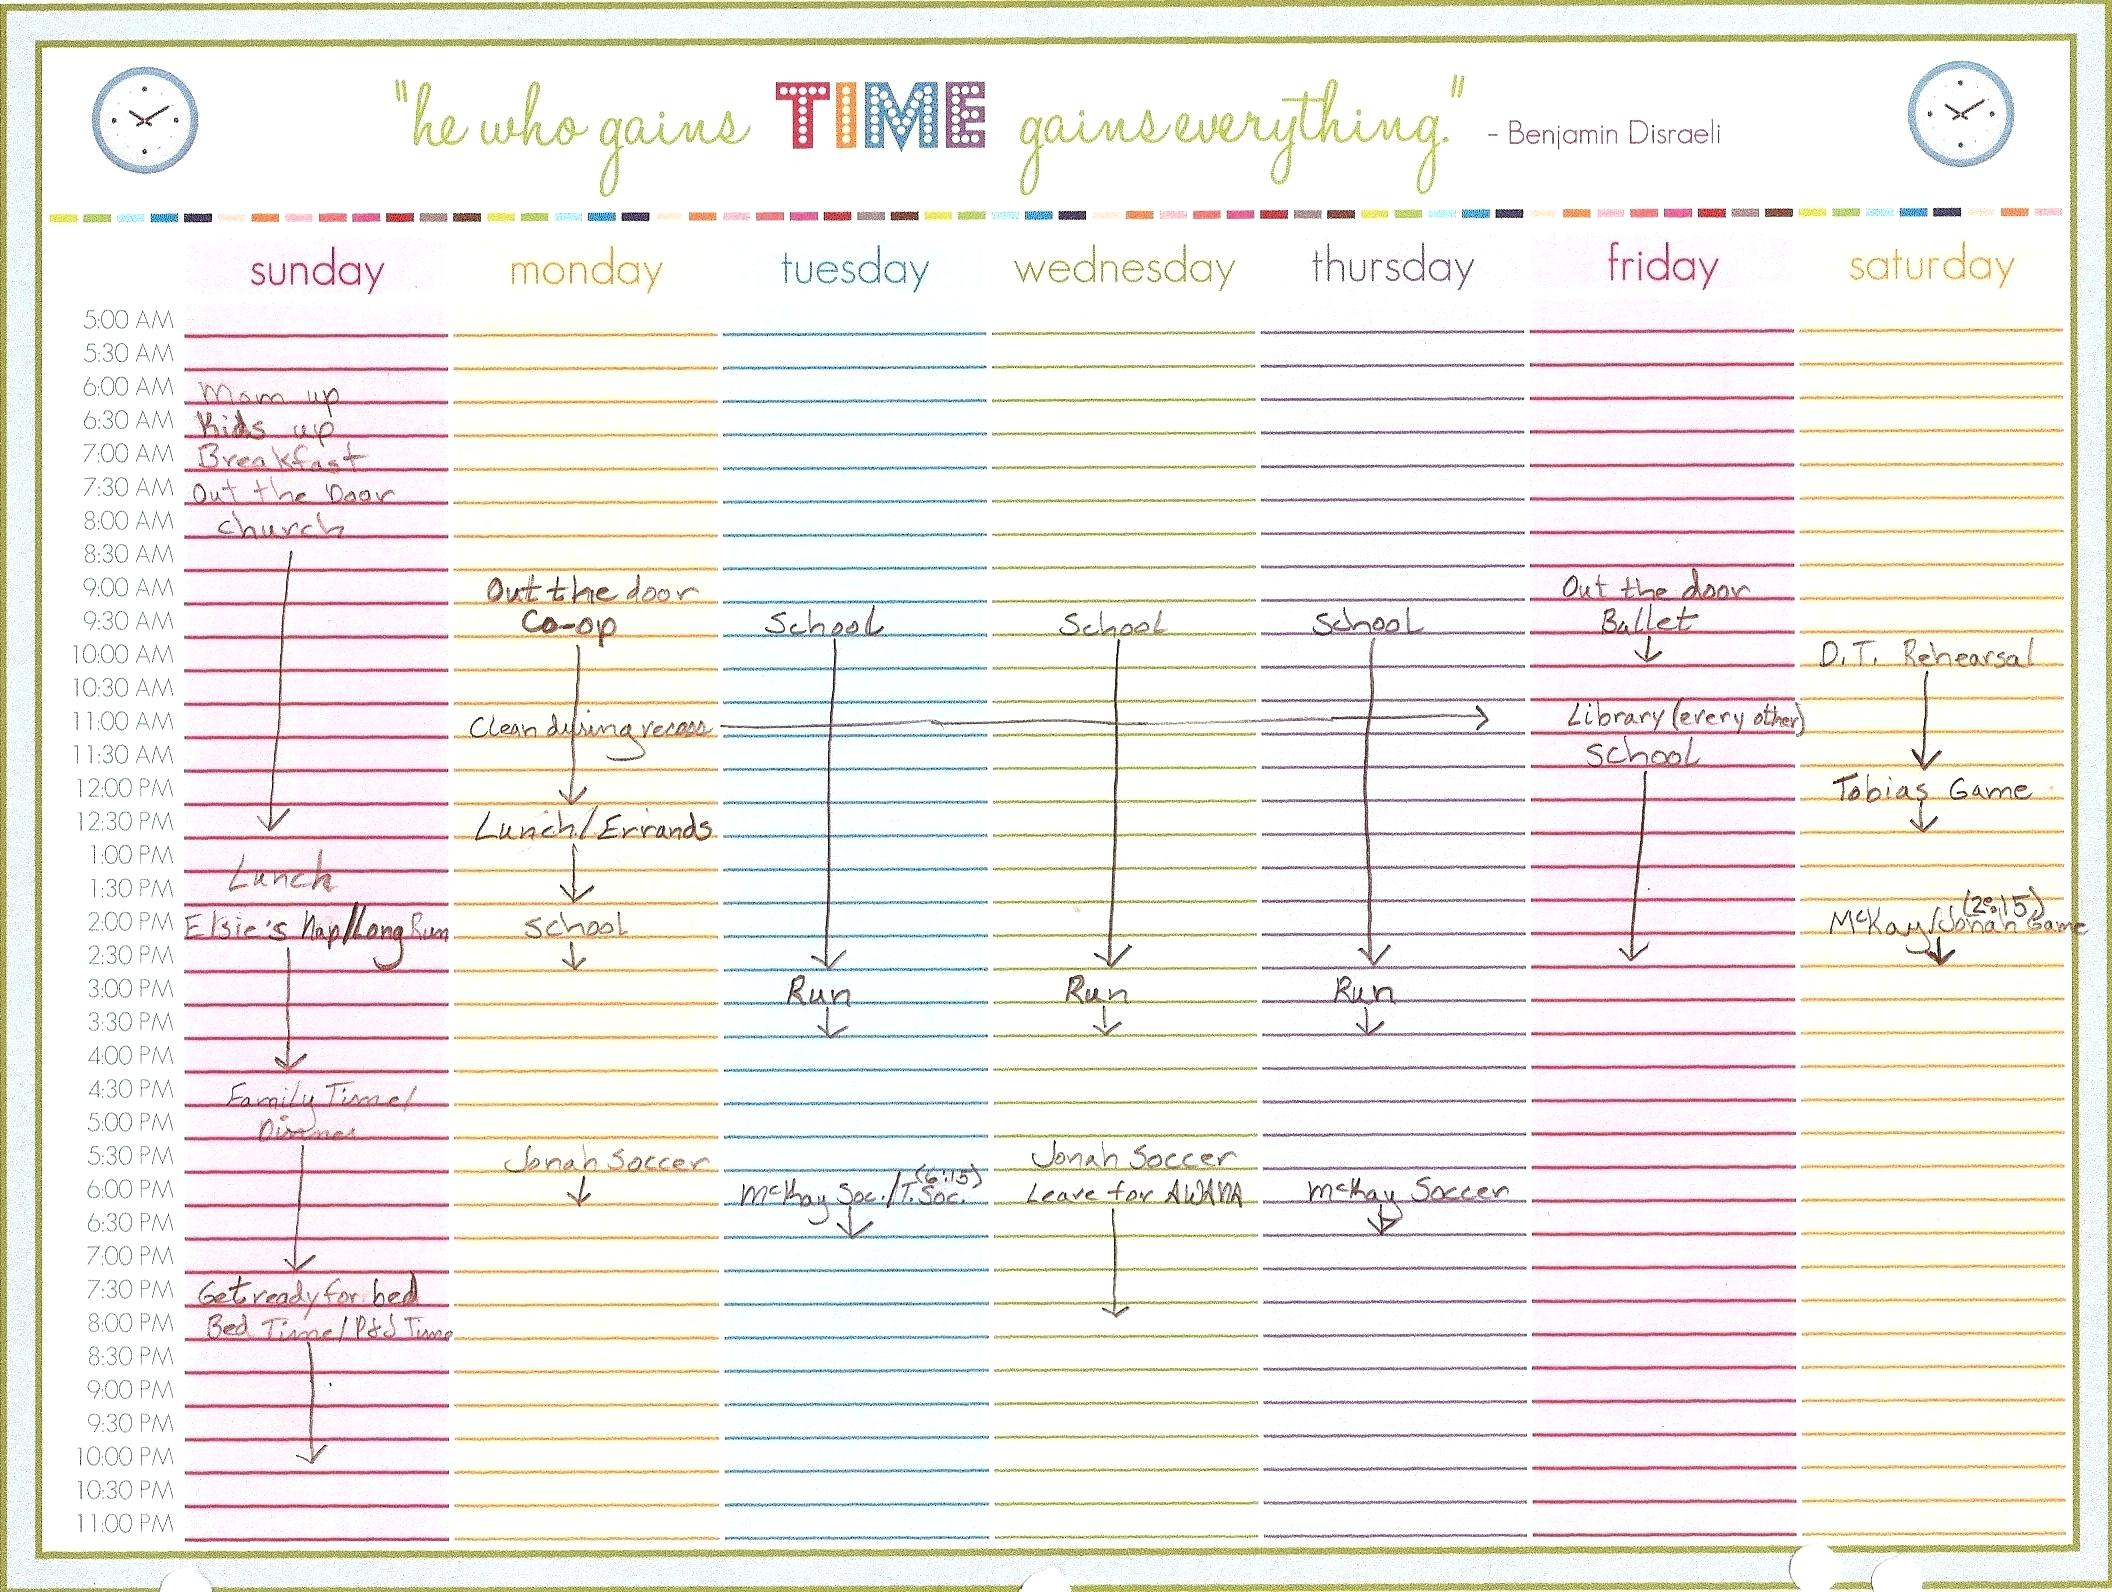 Template Weekly Calendar – Uppage.co in Daily Planner With Time Slots